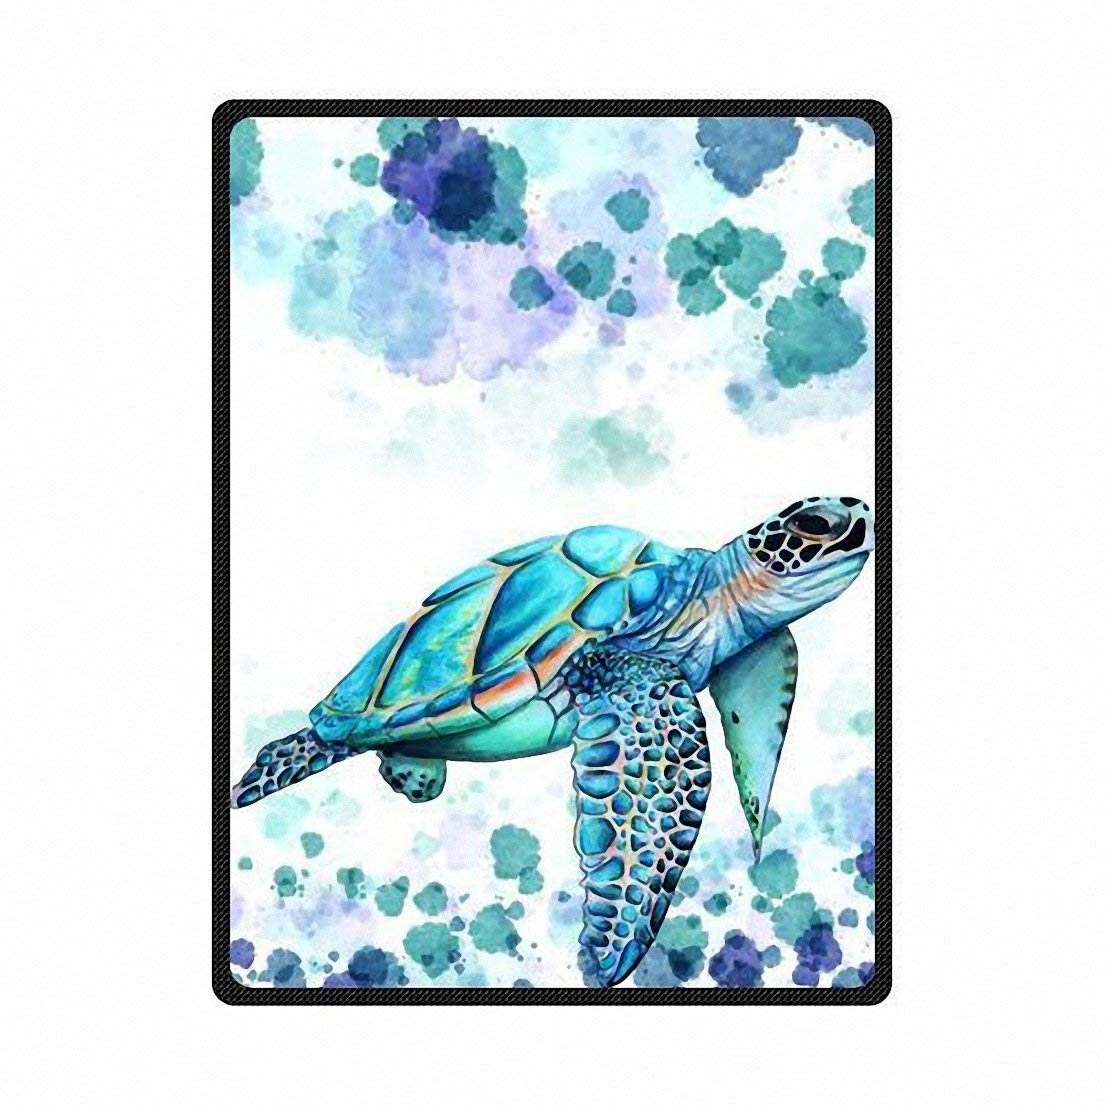 vanfan Cartoon Turtle for Kids Velvet Plush Throw Blanket Super Soft and Cozy Fleece Blanket Perfect for Couch Sofa or Bed, 60W x 70H inch, Multicolor